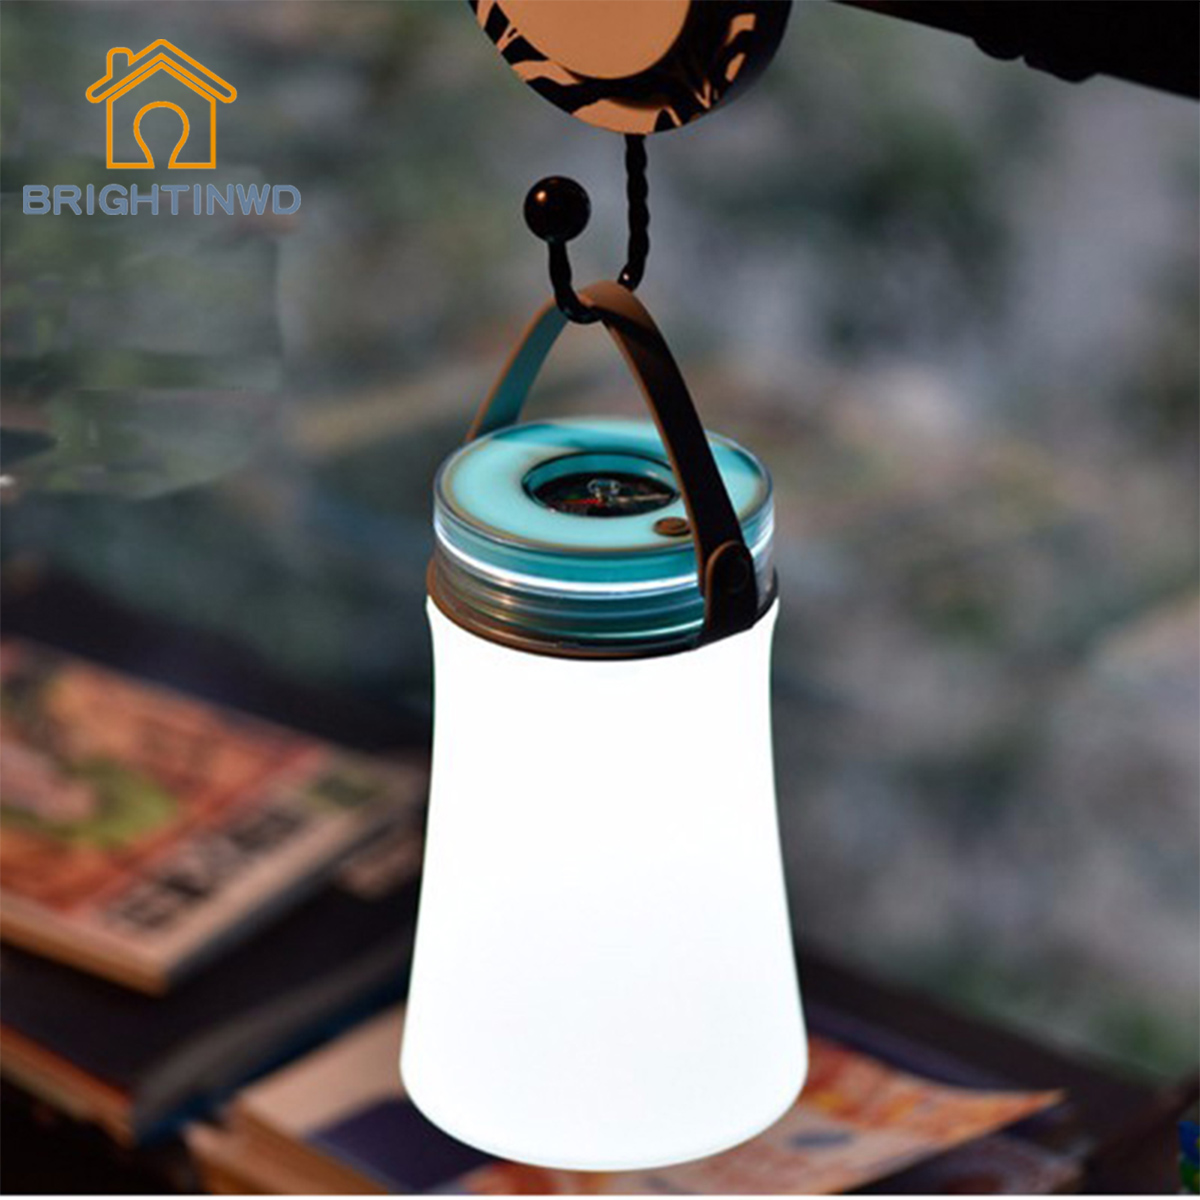 BRIGHTINWD Toys outdoor waterproof camping rechargeable lights portable lights led outdoor lights compass Camping Lantern